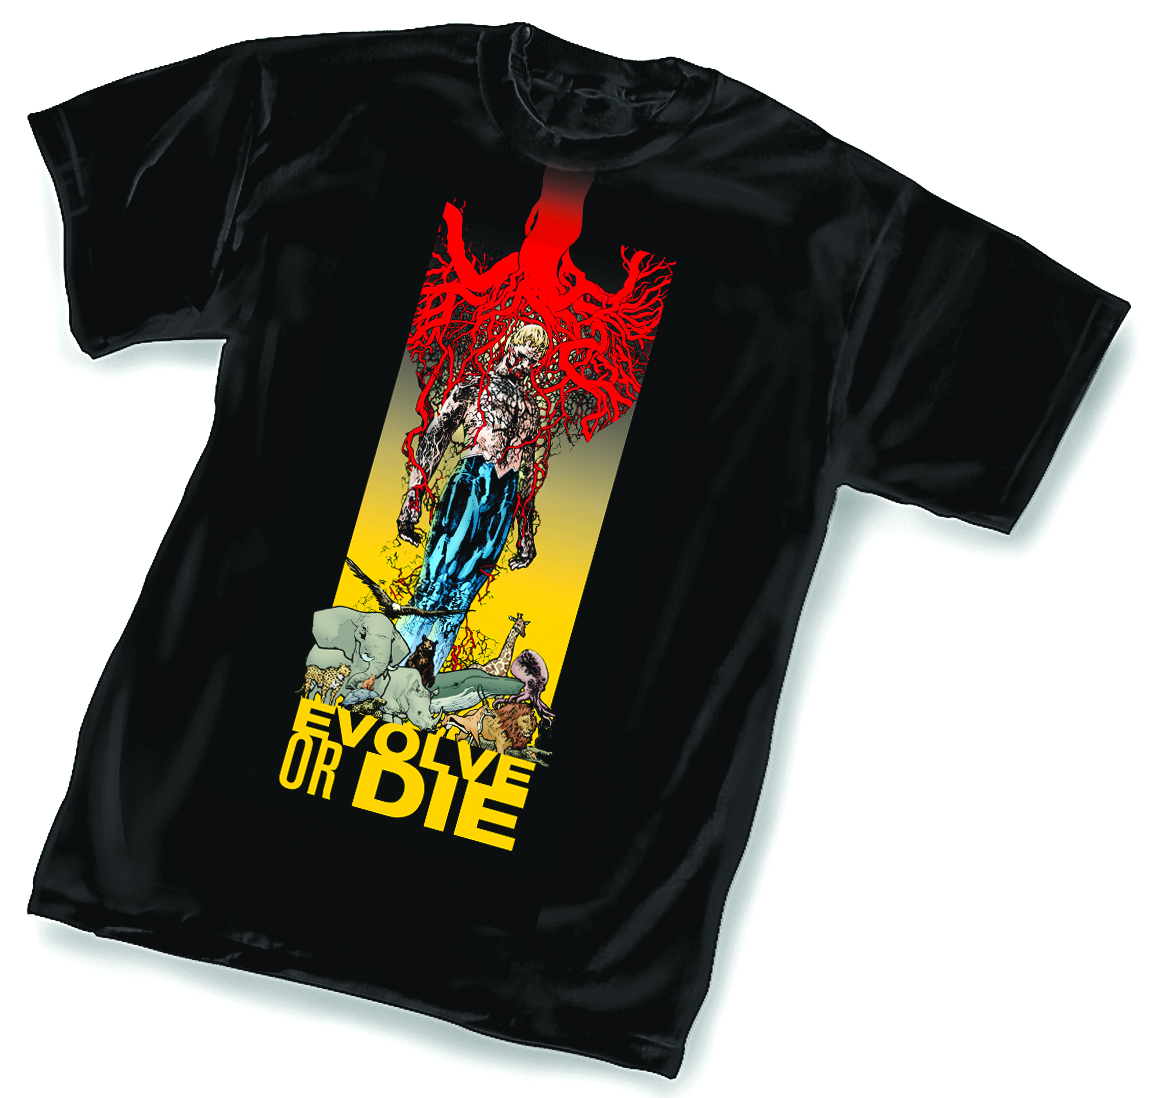 ANIMAL MAN EVOLVE OR DIE BY FOREMAN T/S XL